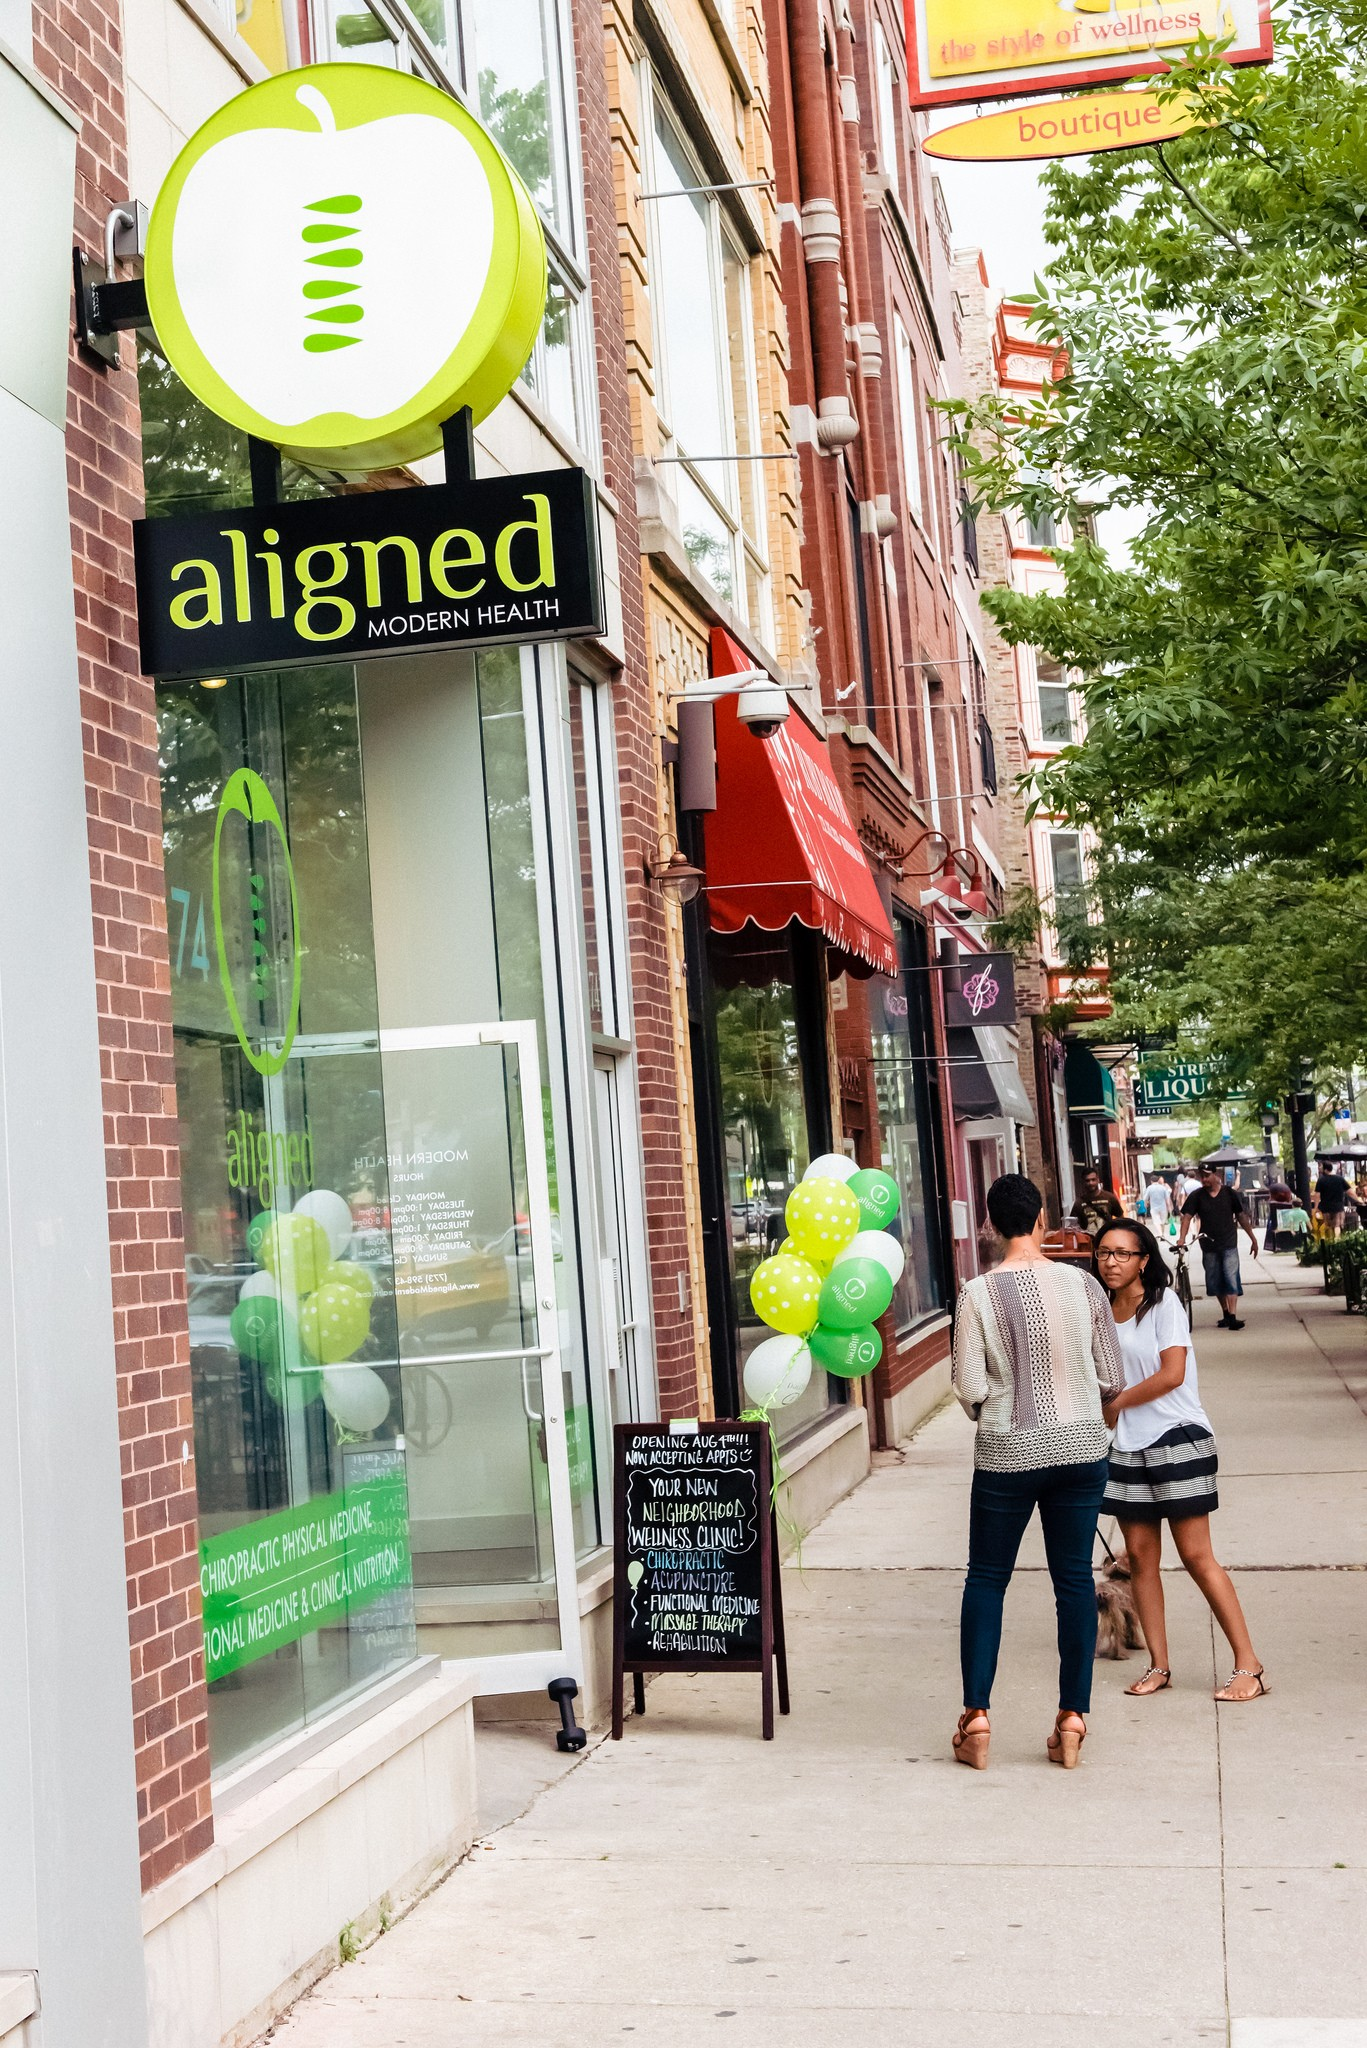 Aligned Modern Health in Wicker Park - Acupuncture and Chiropractic